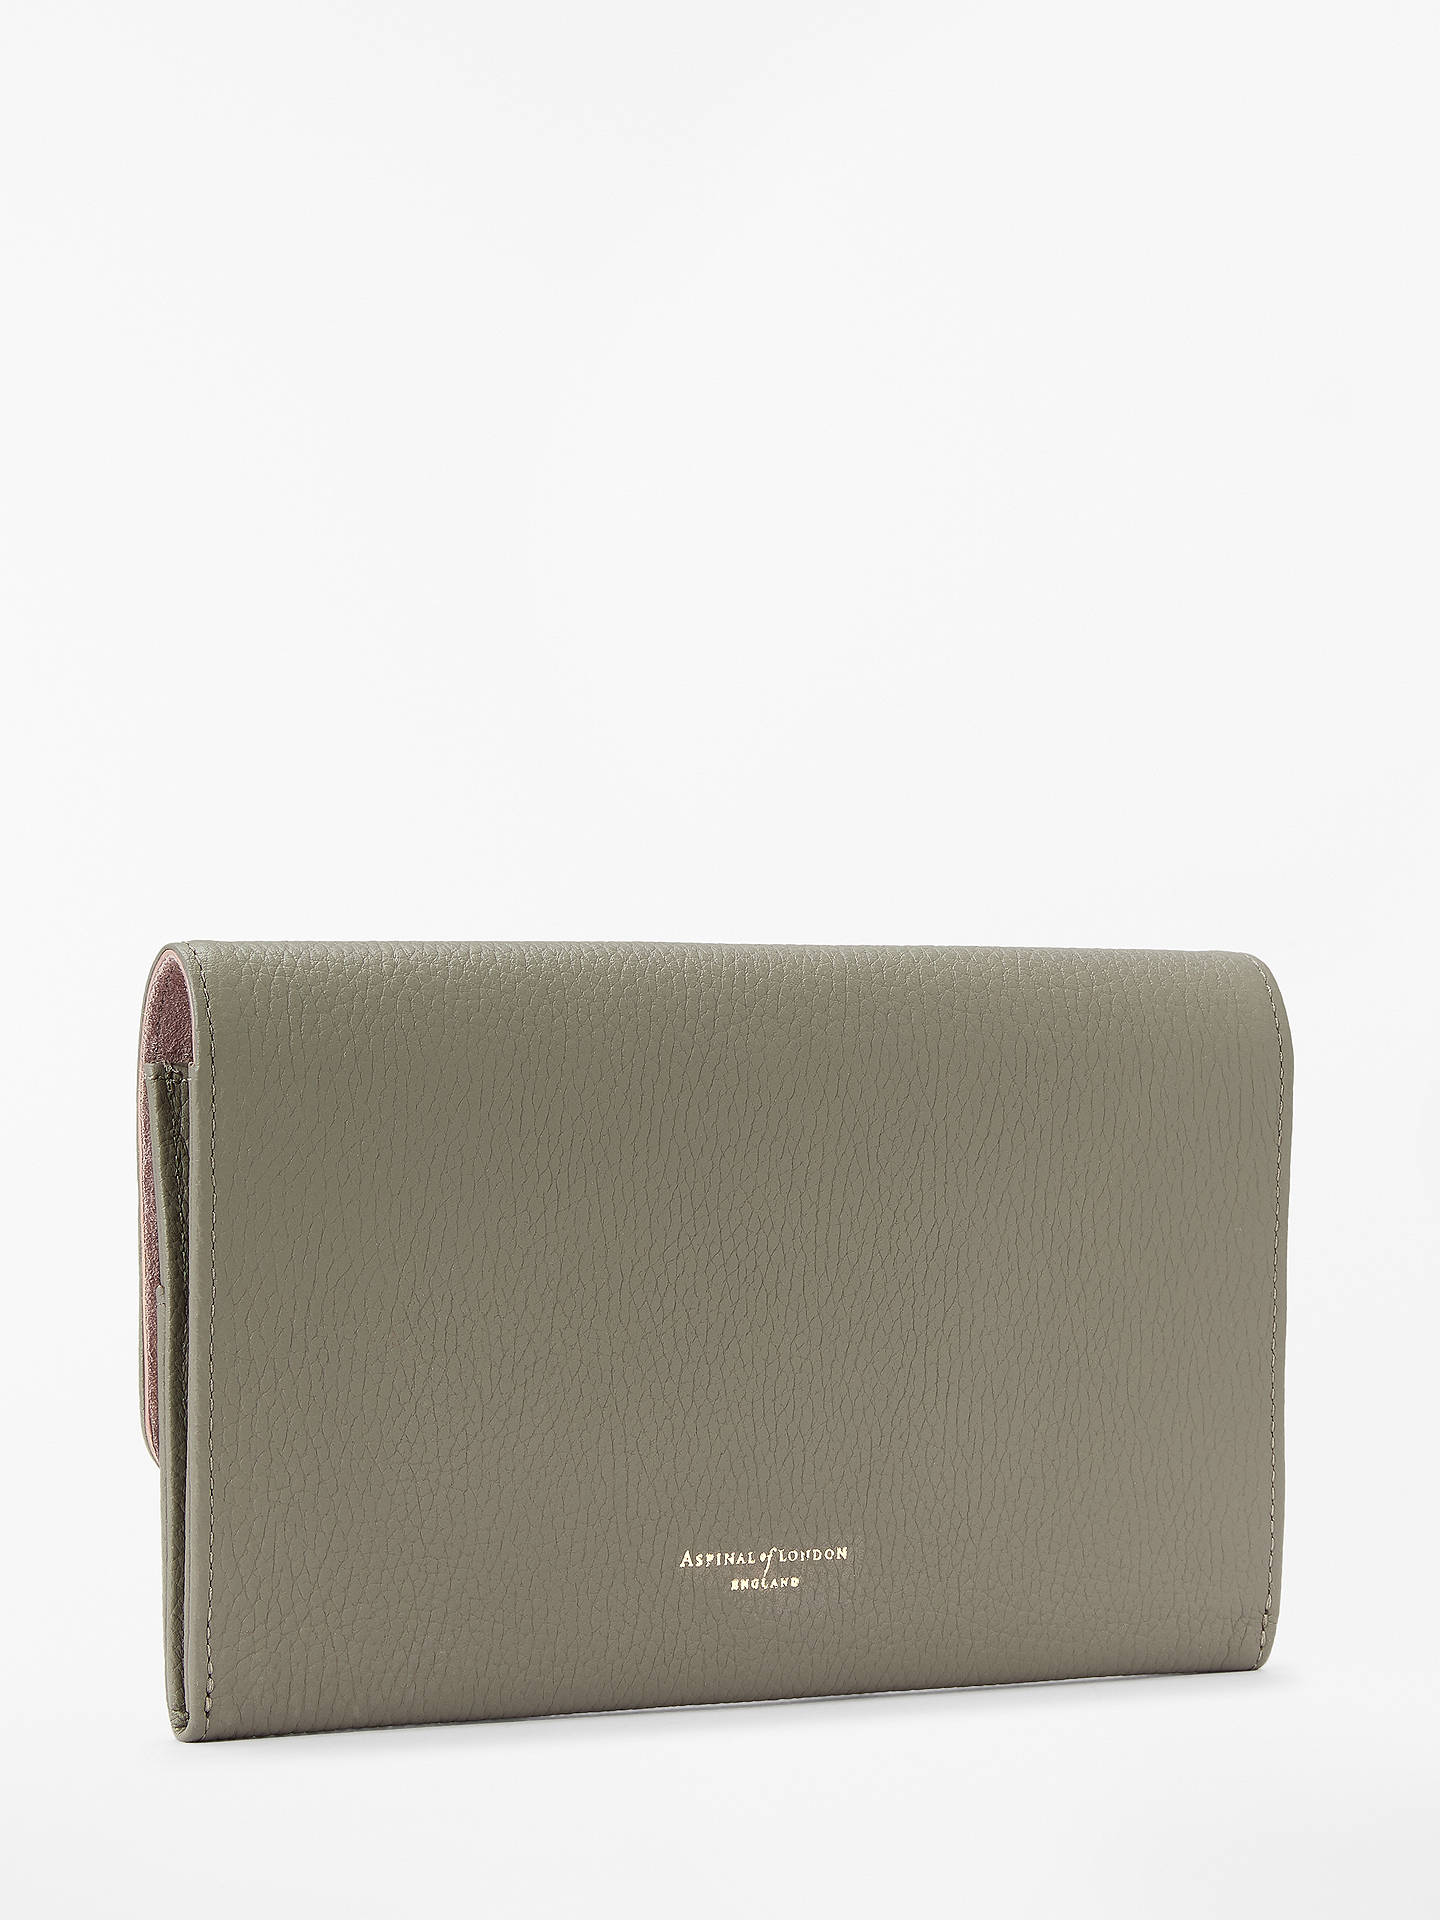 BuyAspinal of London Classic Leather Travel Wallet, Warm Grey Online at johnlewis.com